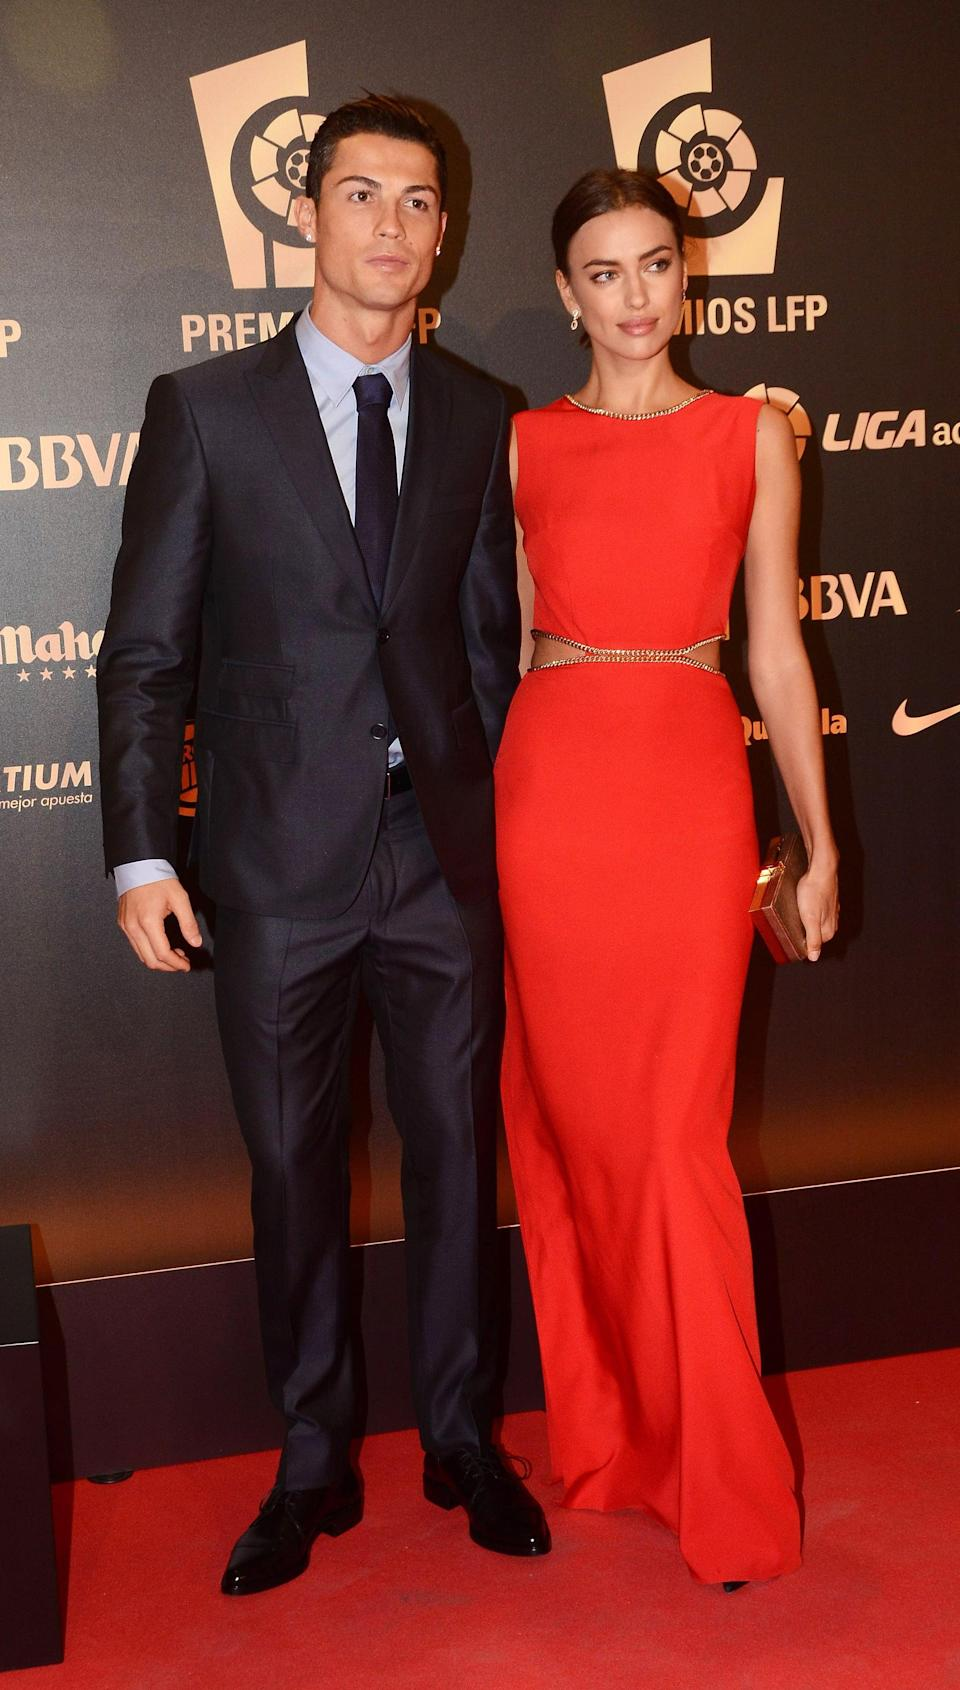 """<p>Shayk's first major public relationship was with Portuguese soccer player Cristiano Ronaldo. According to <strong>US Weekly</strong>, <a href=""""http://www.usmagazine.com/celebrity-news/news/cristiano-ronaldo-irina-shayk-split-after-five-years-of-dating-2015171/"""" class=""""link rapid-noclick-resp"""" rel=""""nofollow noopener"""" target=""""_blank"""" data-ylk=""""slk:the pair met while on set of an Armani ad"""">the pair met while on set of an Armani ad</a> in 2010. Immediately, they became an """"it"""" couple in Hollywood, making red carpet appearances, embracing in PDA, and were even <a href=""""https://twitter.com/VogueSpain/status/468321838159122432"""" class=""""link rapid-noclick-resp"""" rel=""""nofollow noopener"""" target=""""_blank"""" data-ylk=""""slk:photographed together for Vogue España's June issue in 2014"""">photographed together for <strong>Vogue España</strong>'s June issue in 2014</a>. </p> <p>Fans began speculating the two had split after Ronaldo didn't accompany Shayk to the premiere of <strong>Hercules</strong> in 2014, and Shayk was absent at the annual FIFA Ballon d'Or in 2015. On January 2015, <strong>US Weekly</strong> confirmed the two had called things off for good. Though neither person explicitly gave an explanation for their split, that same year Shayk told Spanish magazine <strong>Hola!</strong> that her number one relationship rule is faithfulness and honesty, leading many to believe <a href=""""http://www.mirror.co.uk/sport/football/news/irina-shayk-attacks-cristiano-ronaldo-5816133"""" class=""""link rapid-noclick-resp"""" rel=""""nofollow noopener"""" target=""""_blank"""" data-ylk=""""slk:there may have been infidelity"""">there may have been infidelity</a> in their relationship.</p>"""